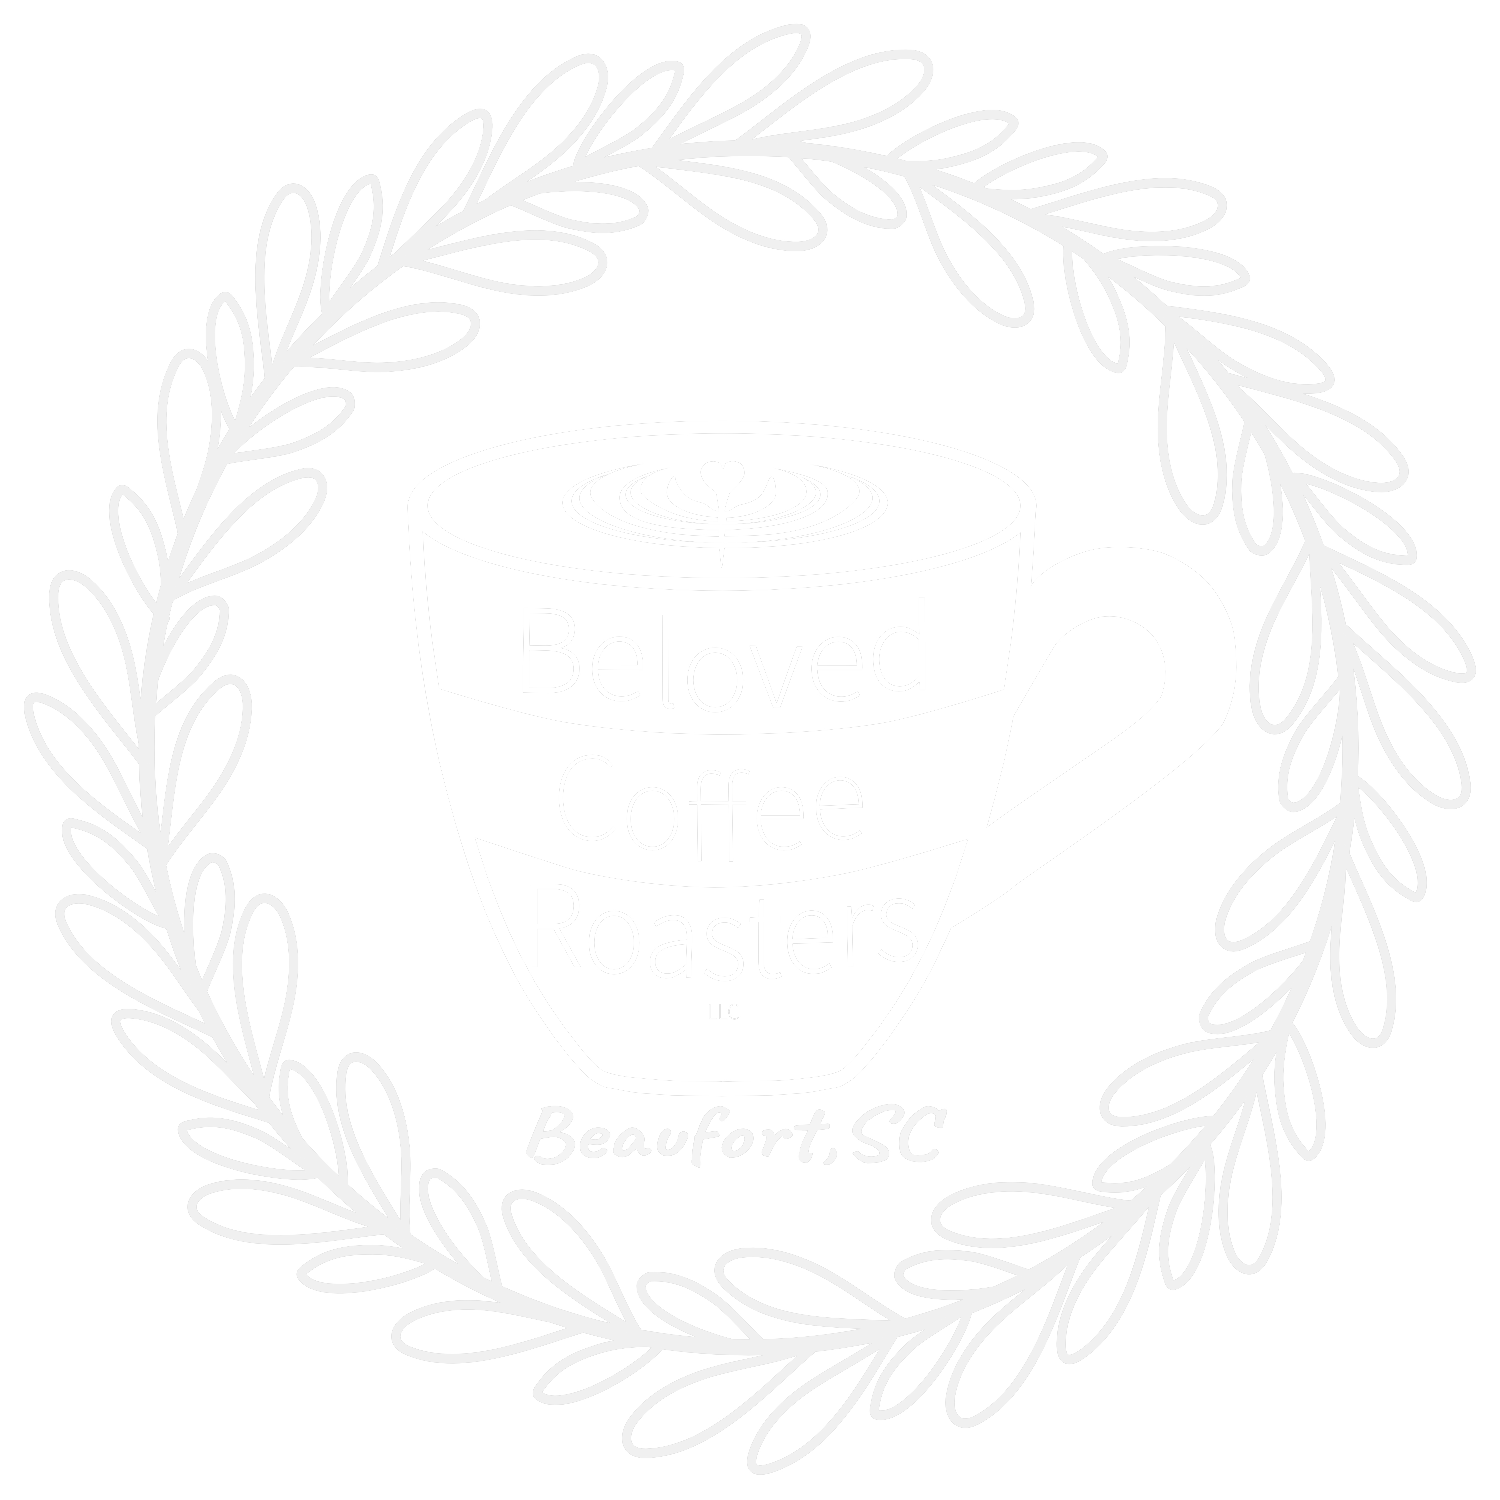 Beloved Coffee Roasters